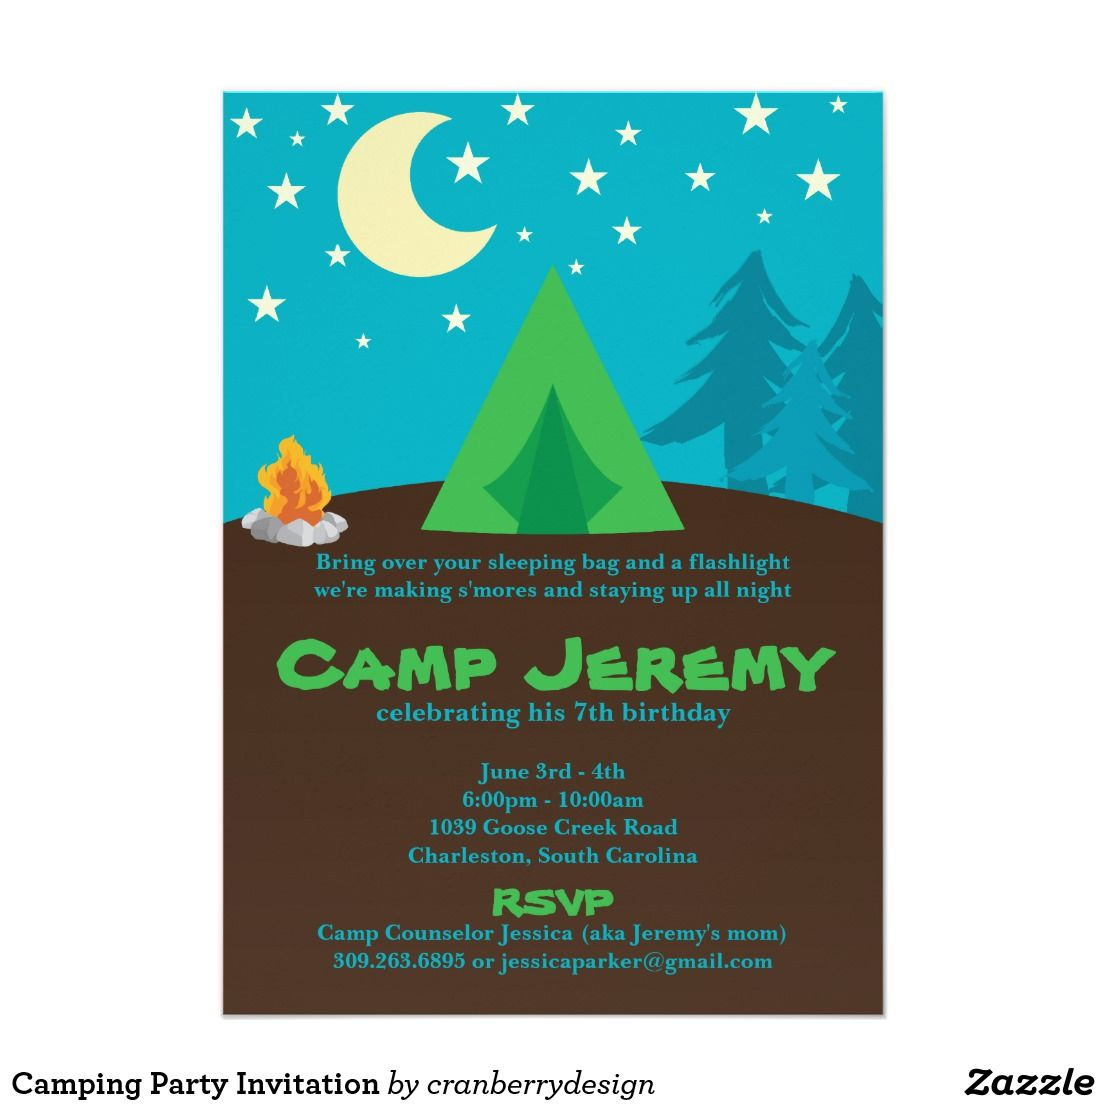 Camping Party Invitation   Camping party invitations and Party ...